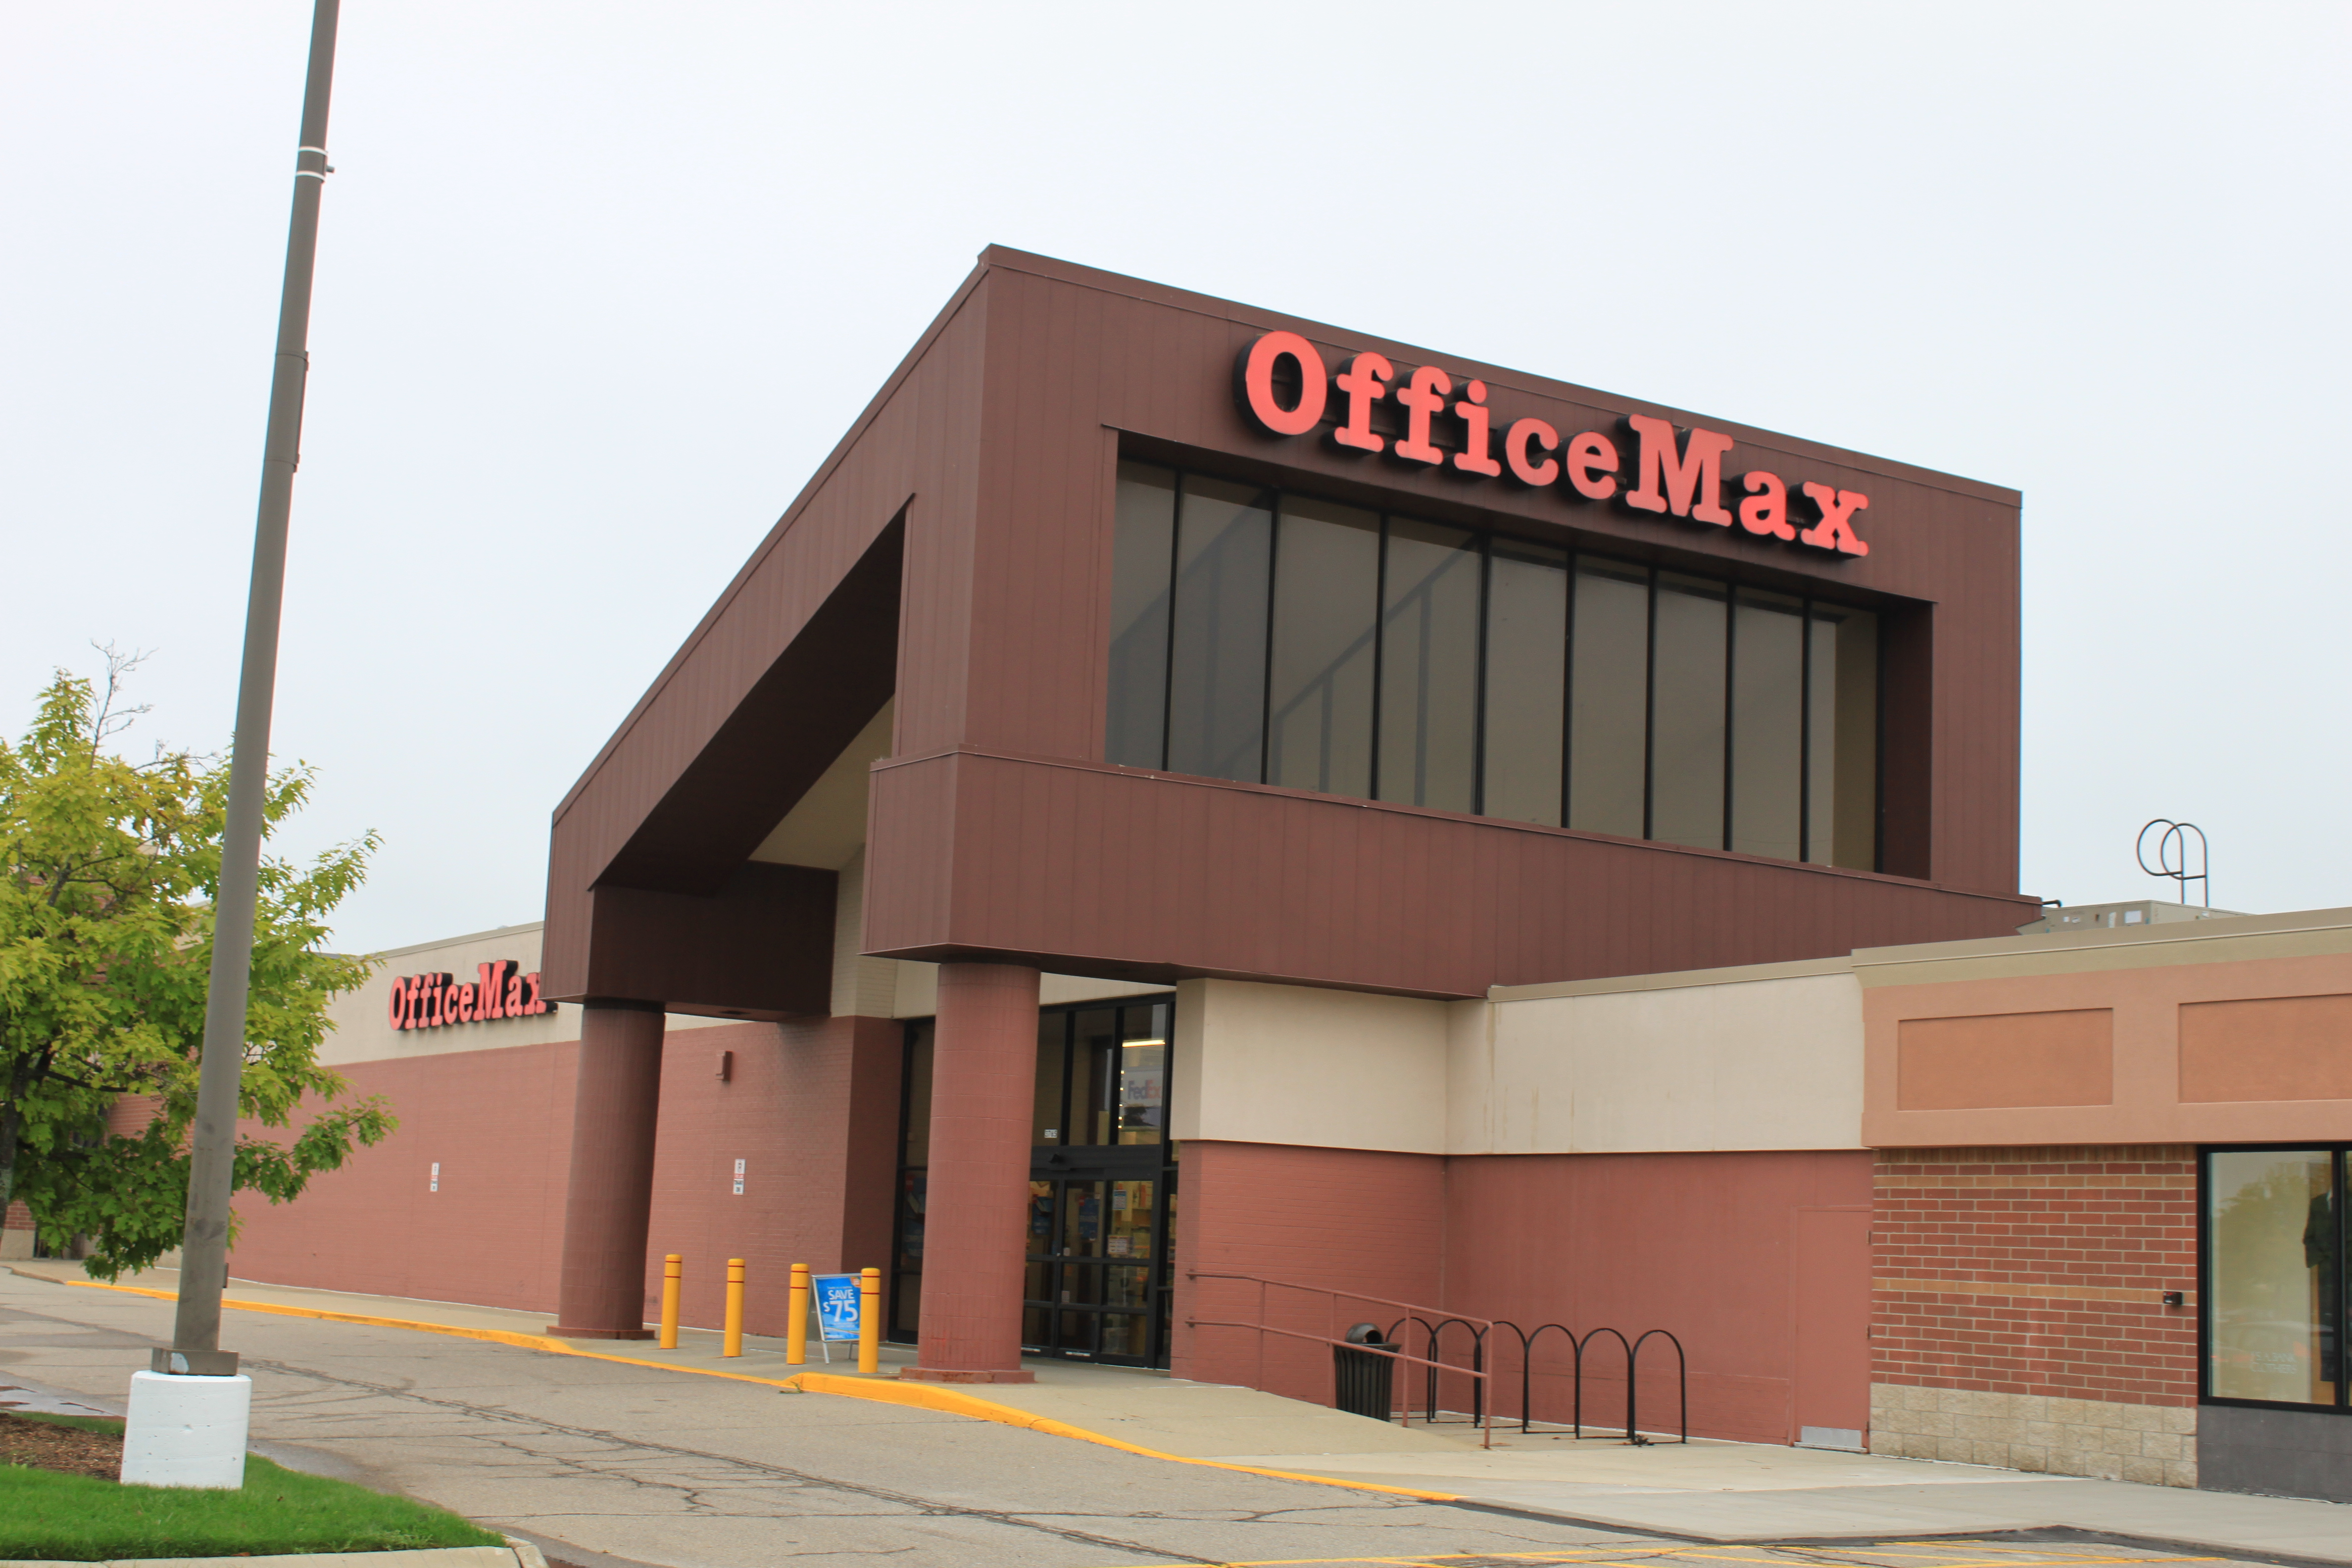 OfficeMax - Wikiwand